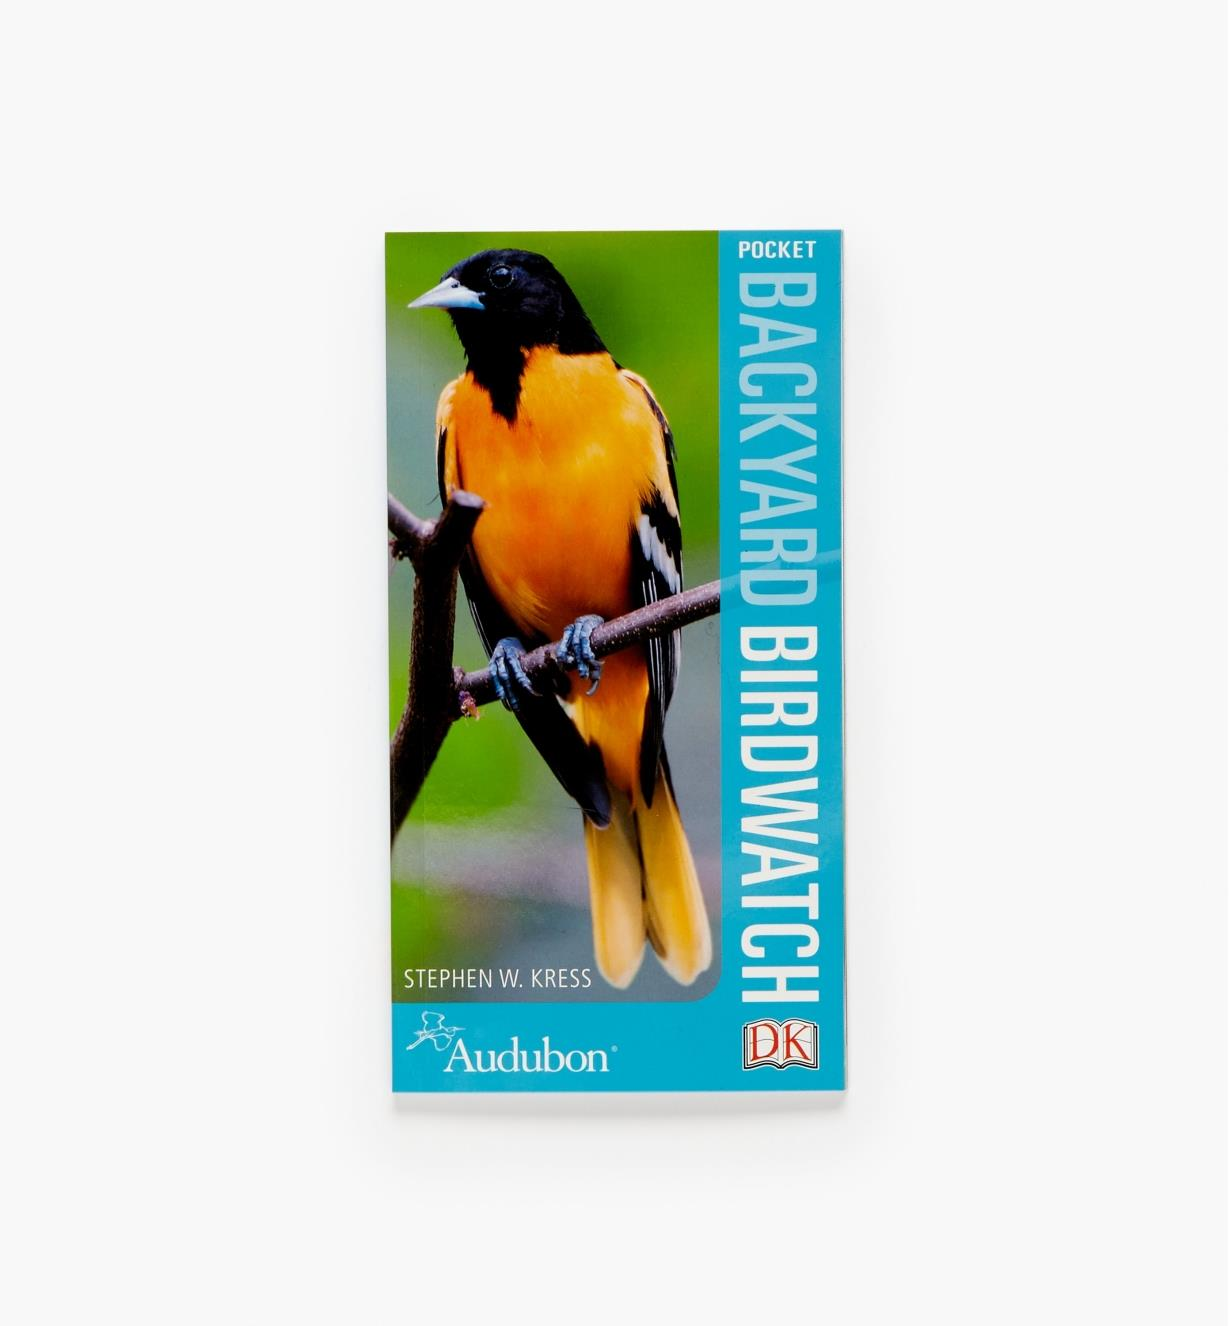 LA906 - Audubon Pocket Backyard Birdwatch